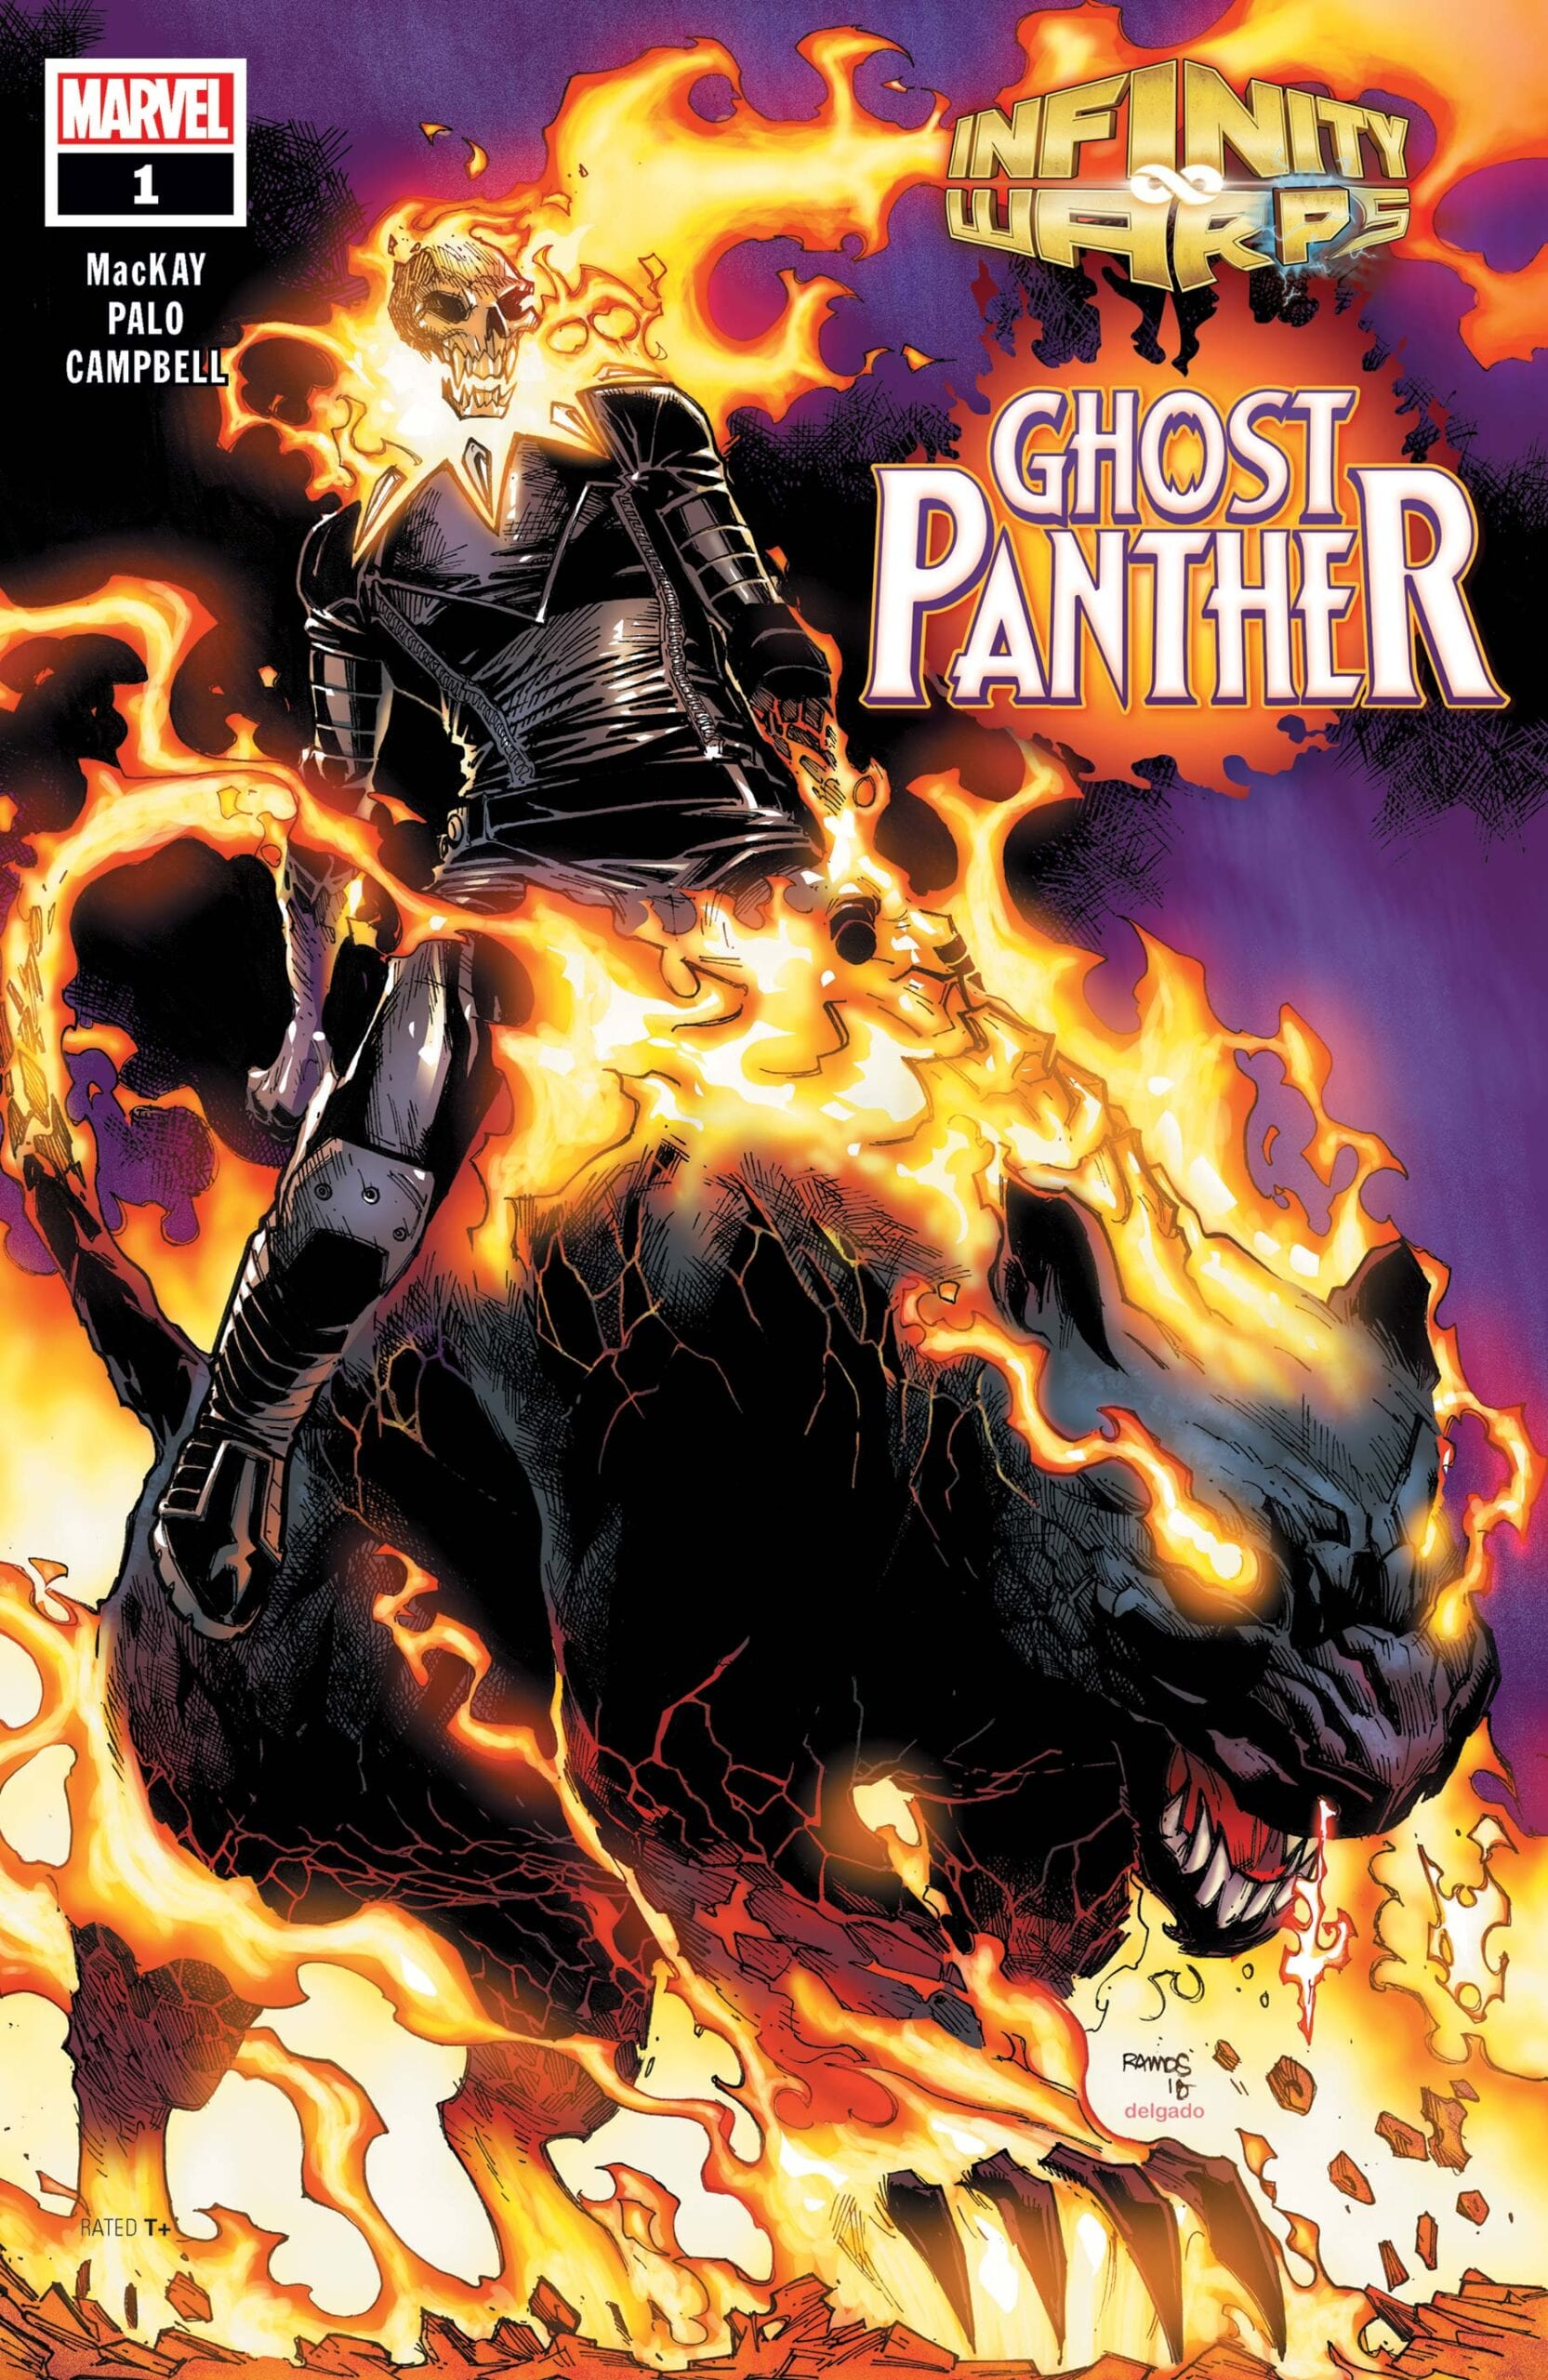 Comic completo Infinity Wars: Ghost Panther